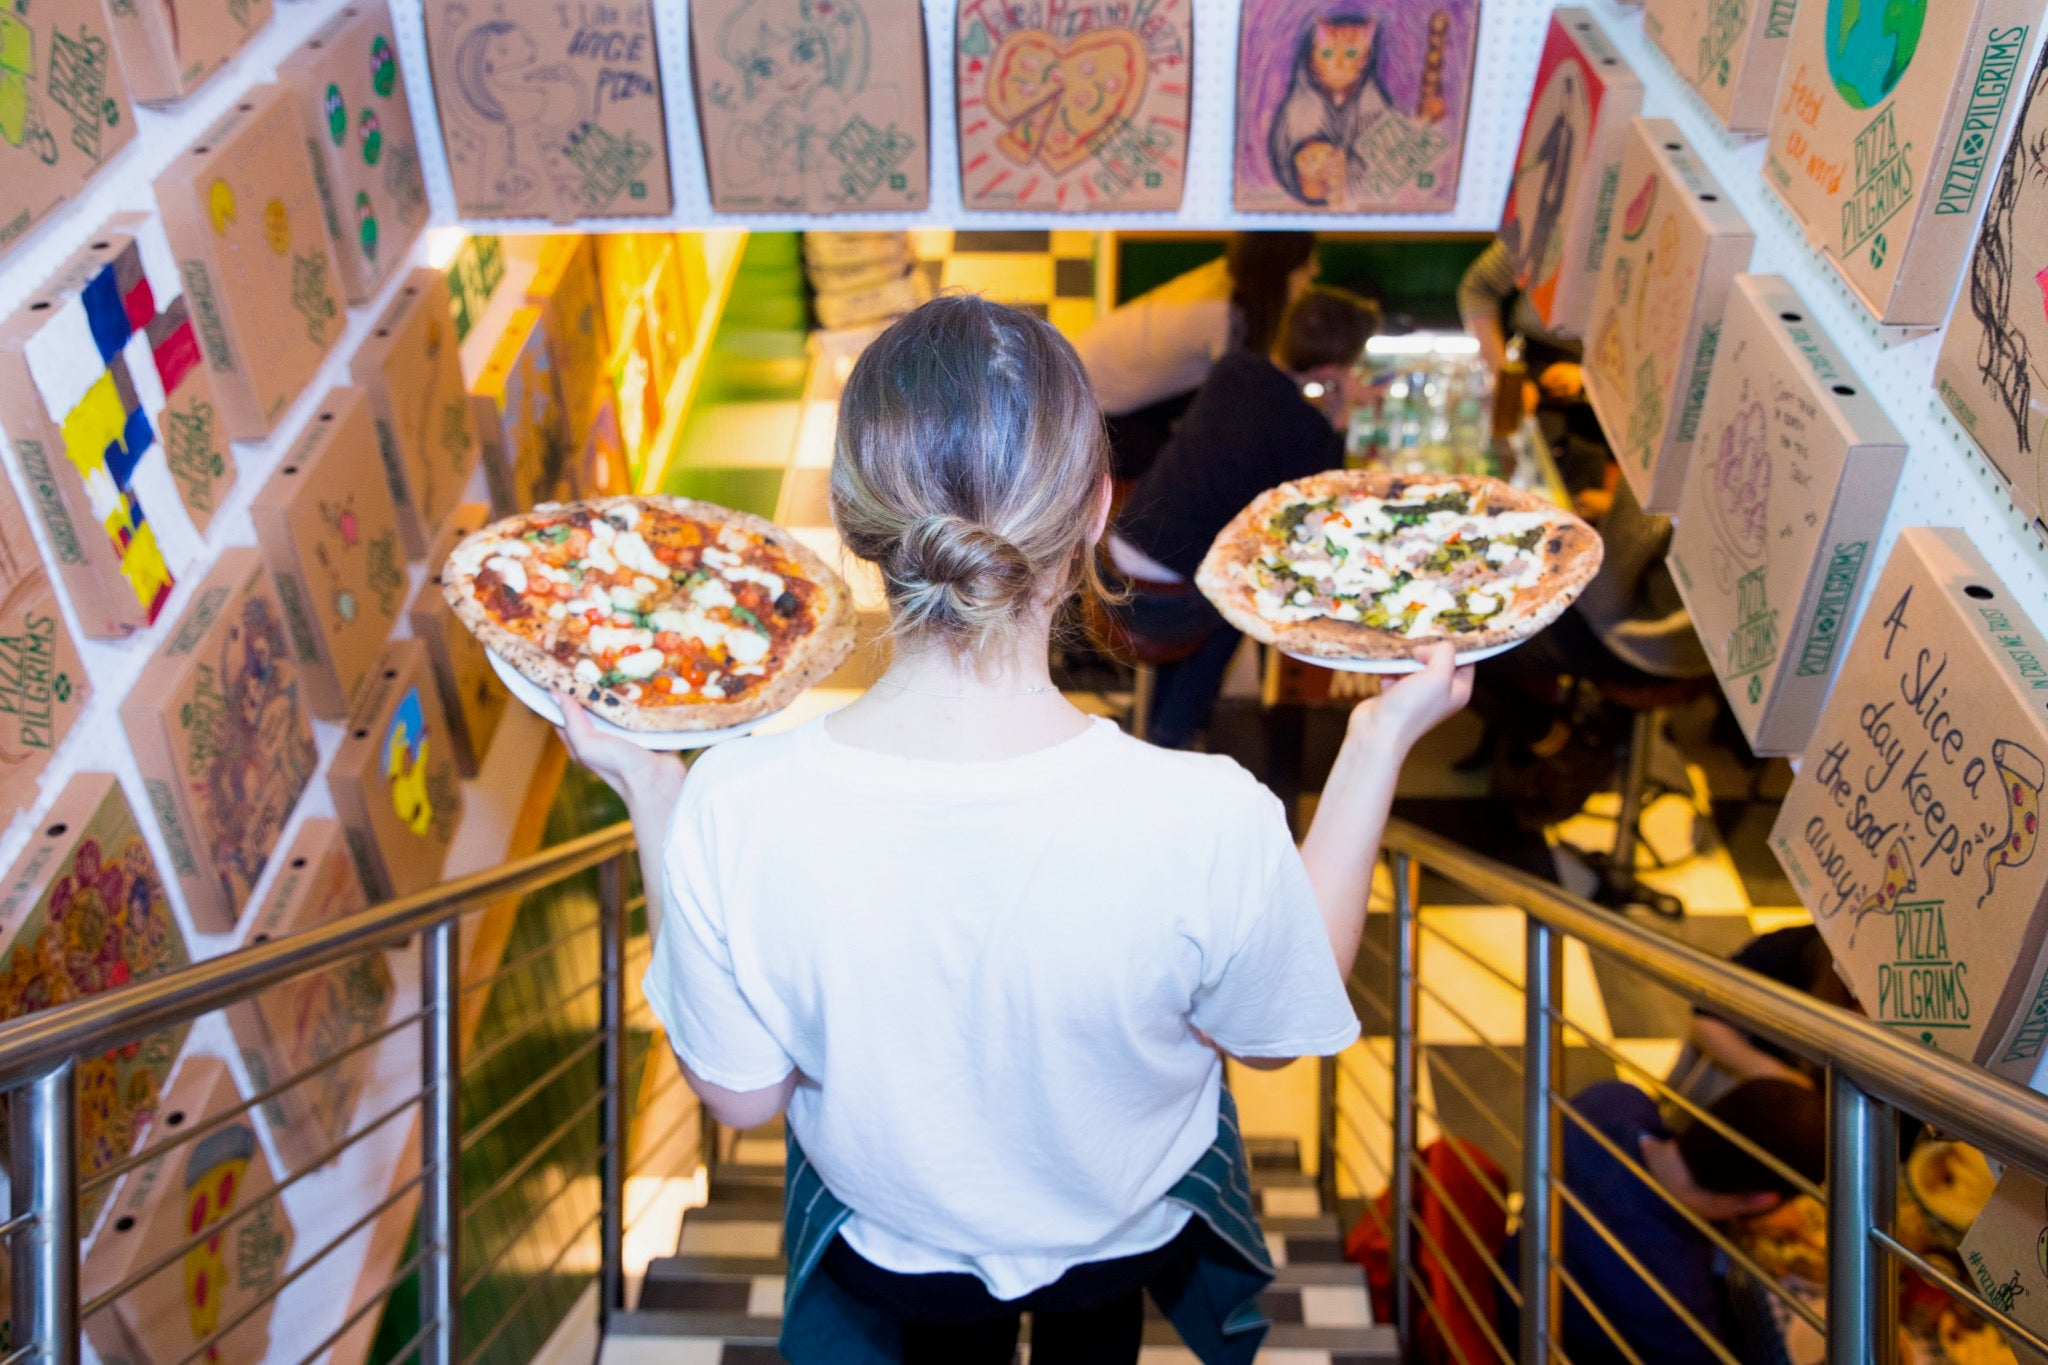 A waitress with two pizzas in her hands at the Shoreditch location of Pizza Pilgrims back in its bustling days prior to COVID-19